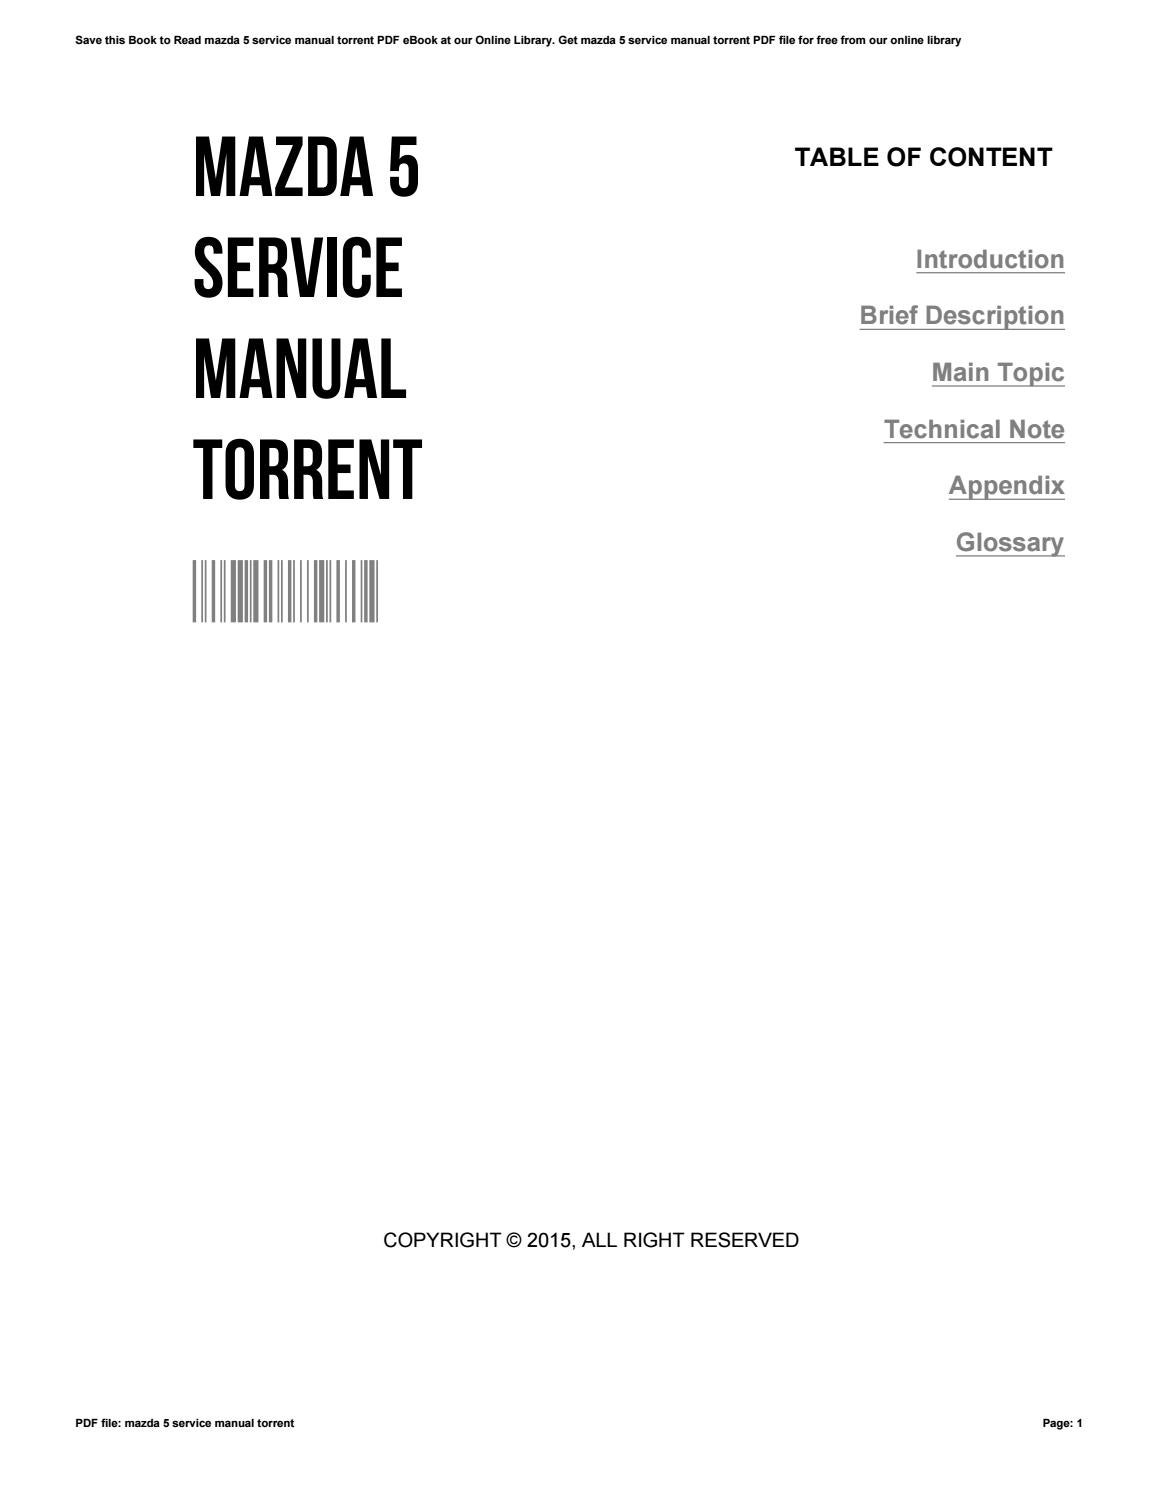 Mazda 5 service manual torrent by ClarenceThomasson2728